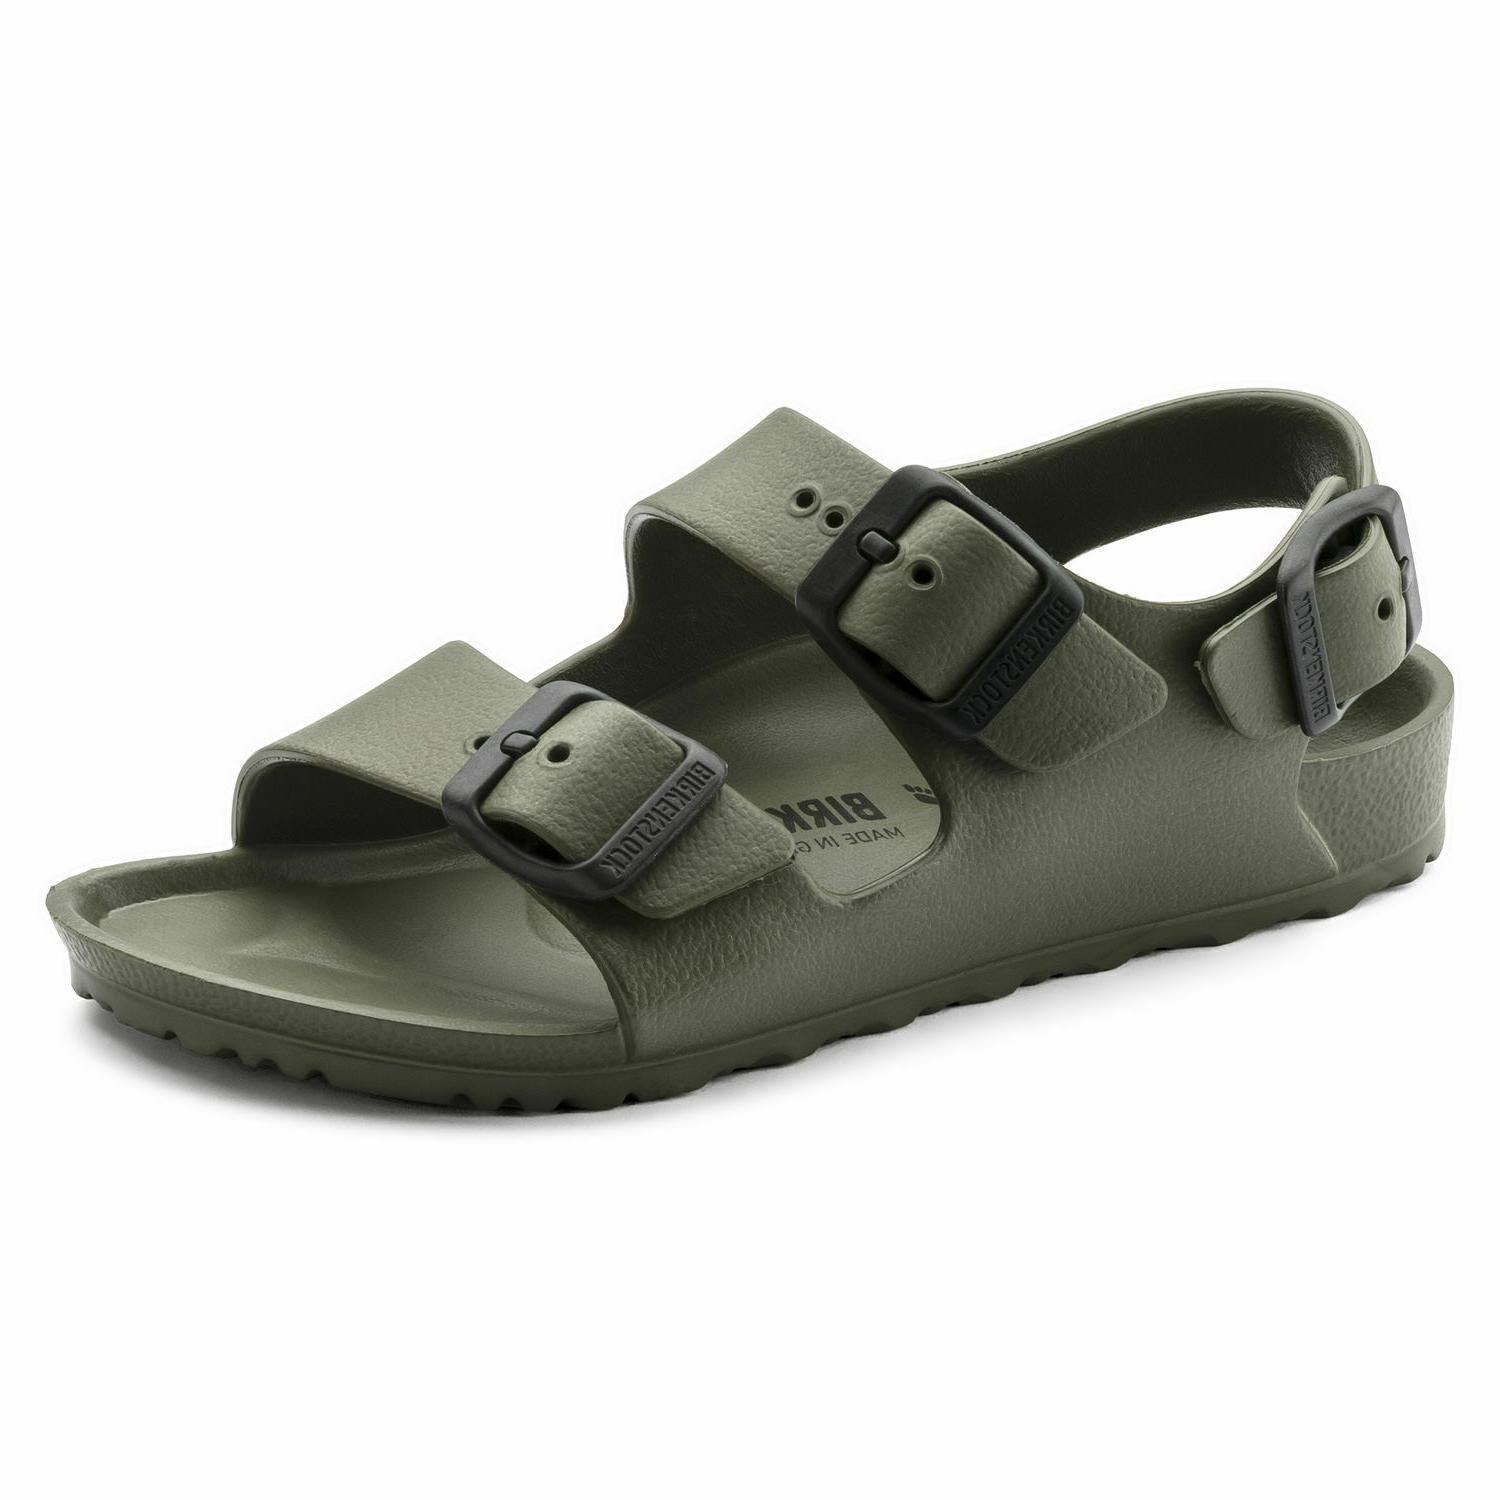 sandals milano eva kids narrow fit khaki